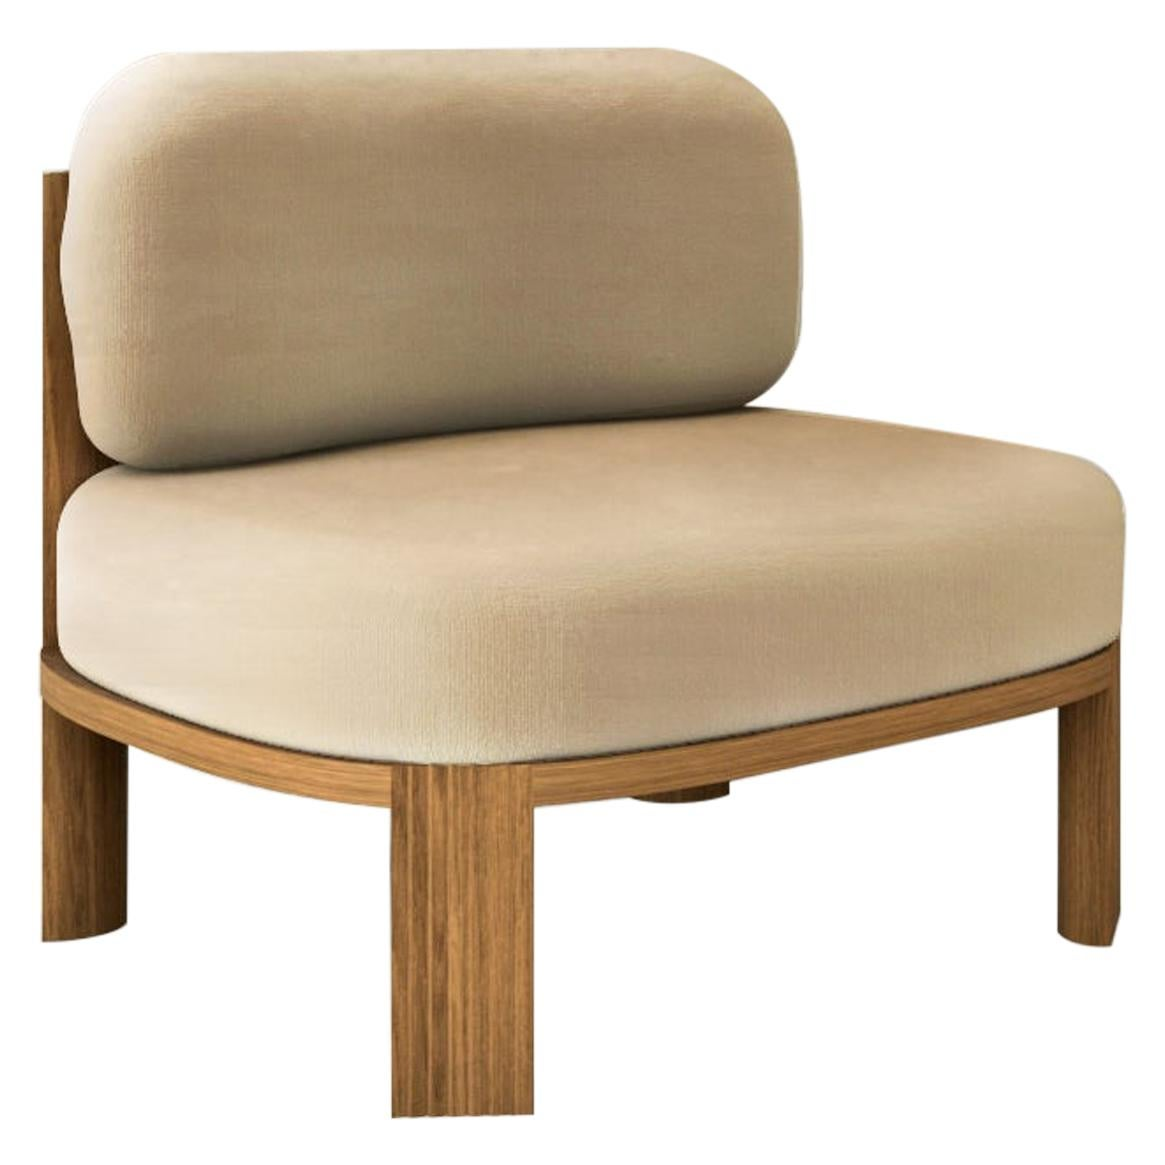 Oak Armchair by Collector